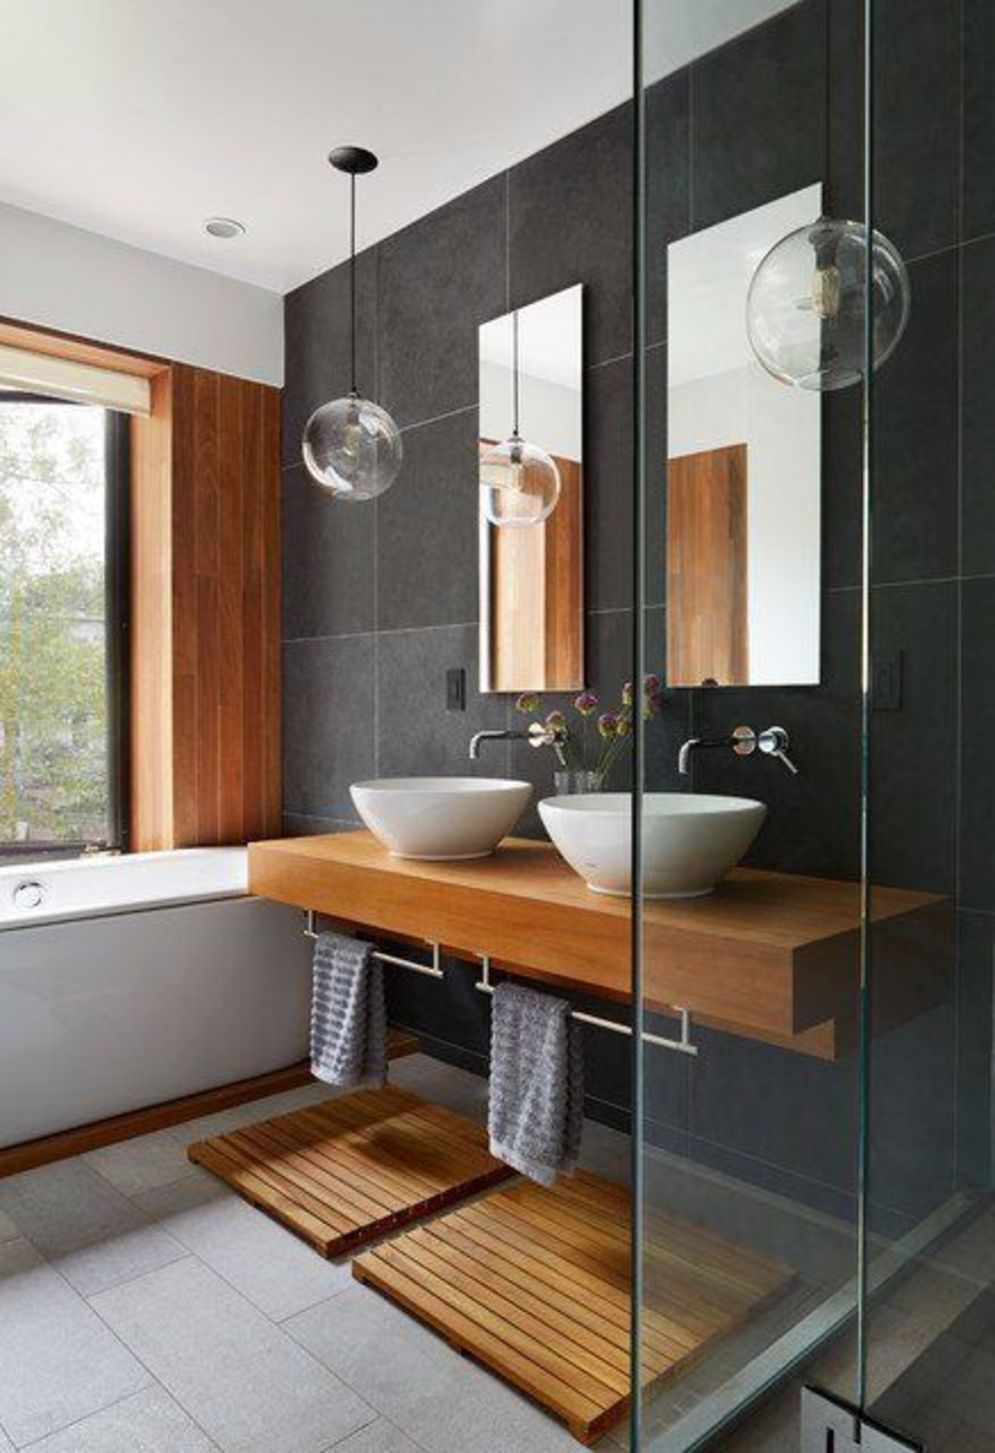 Timeless bathroom designs with wood accents enhancing more natural vibes Image 31